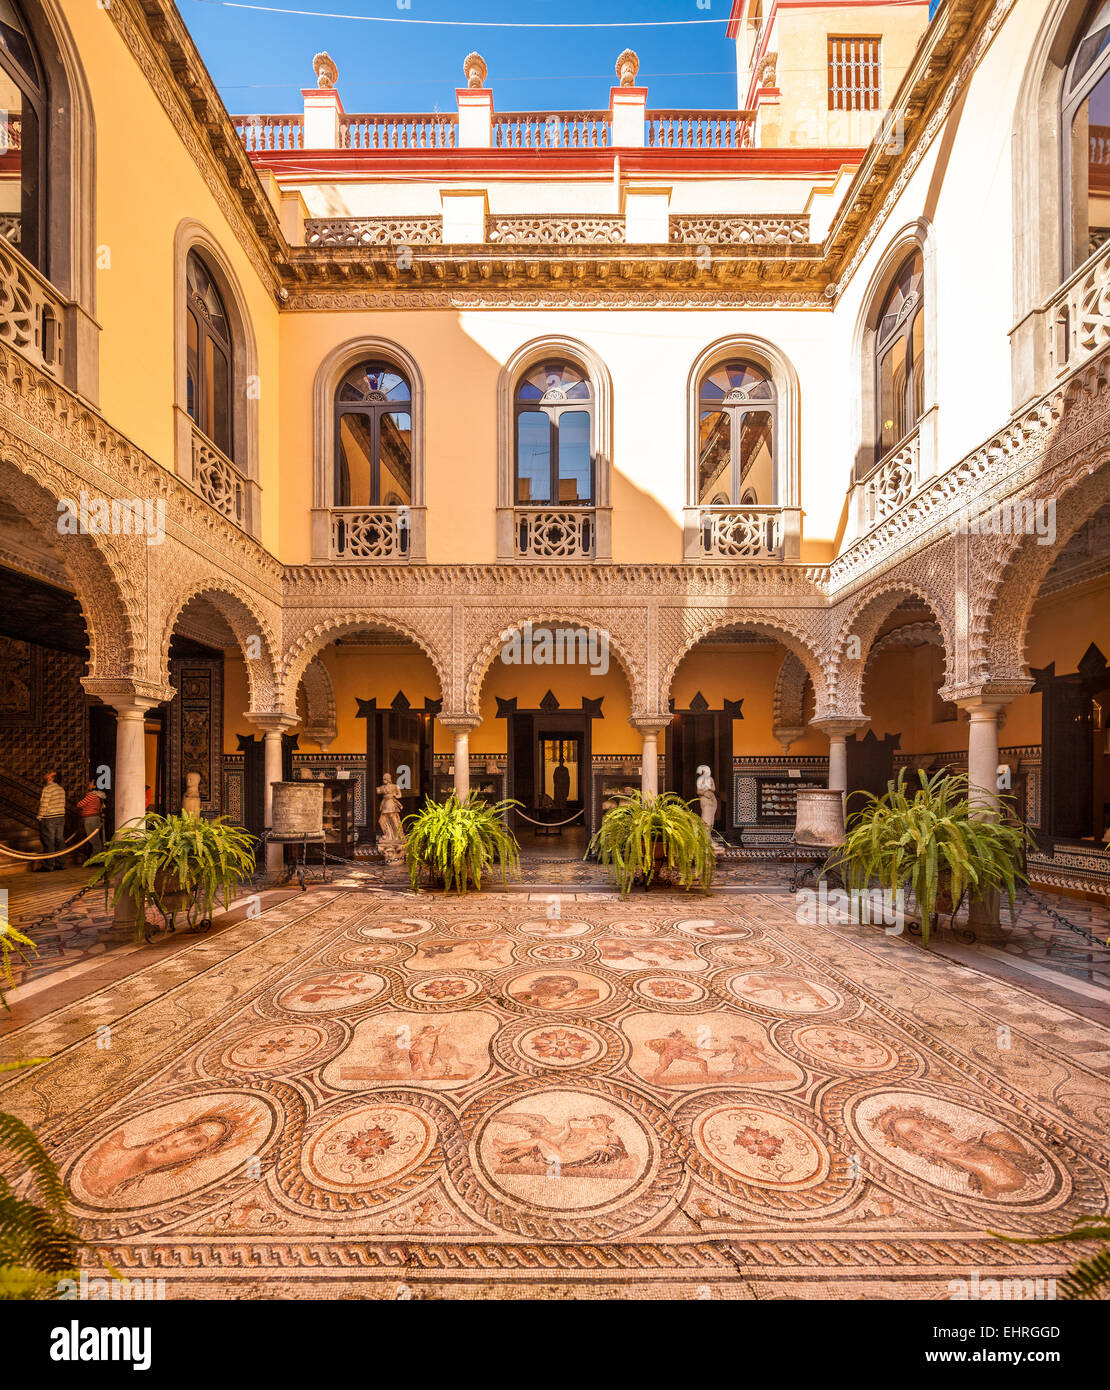 https://c7.alamy.com/comp/EHRGGD/seville-spain-courtyard-with-roman-mosaics-sevilla-palace-of-the-countess-EHRGGD.jpg